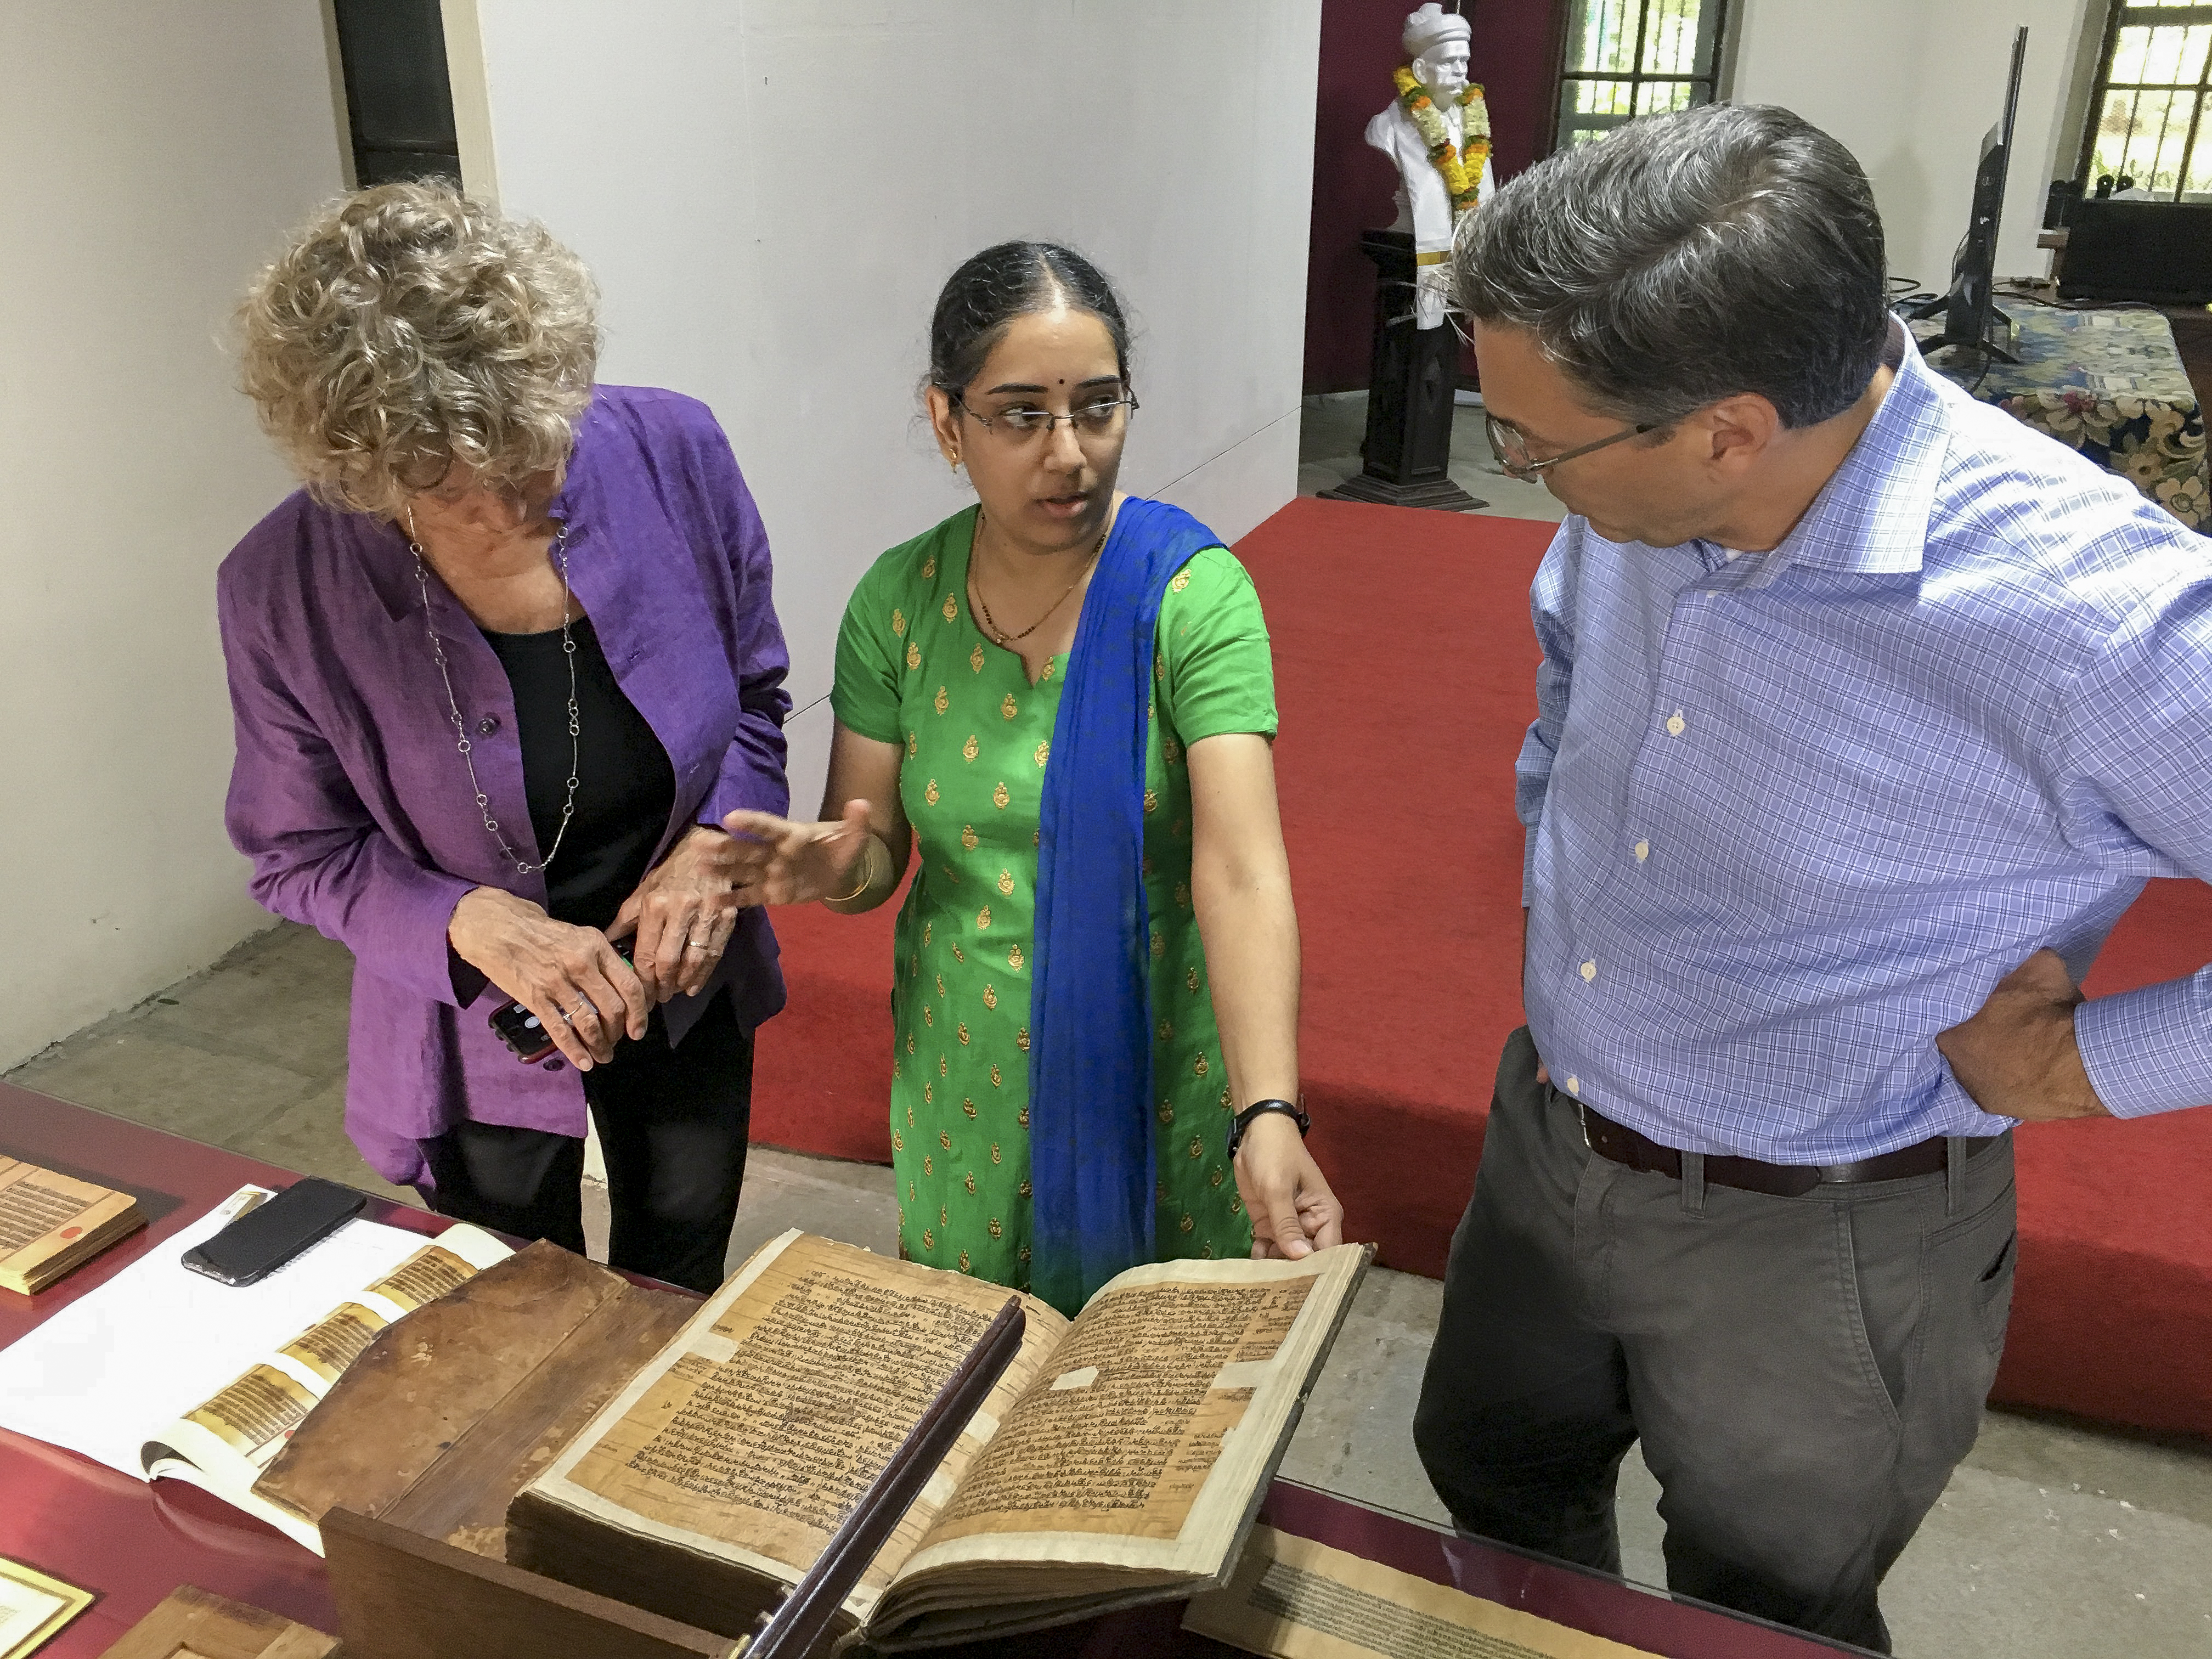 photograph of 3 people looking at an ancient book